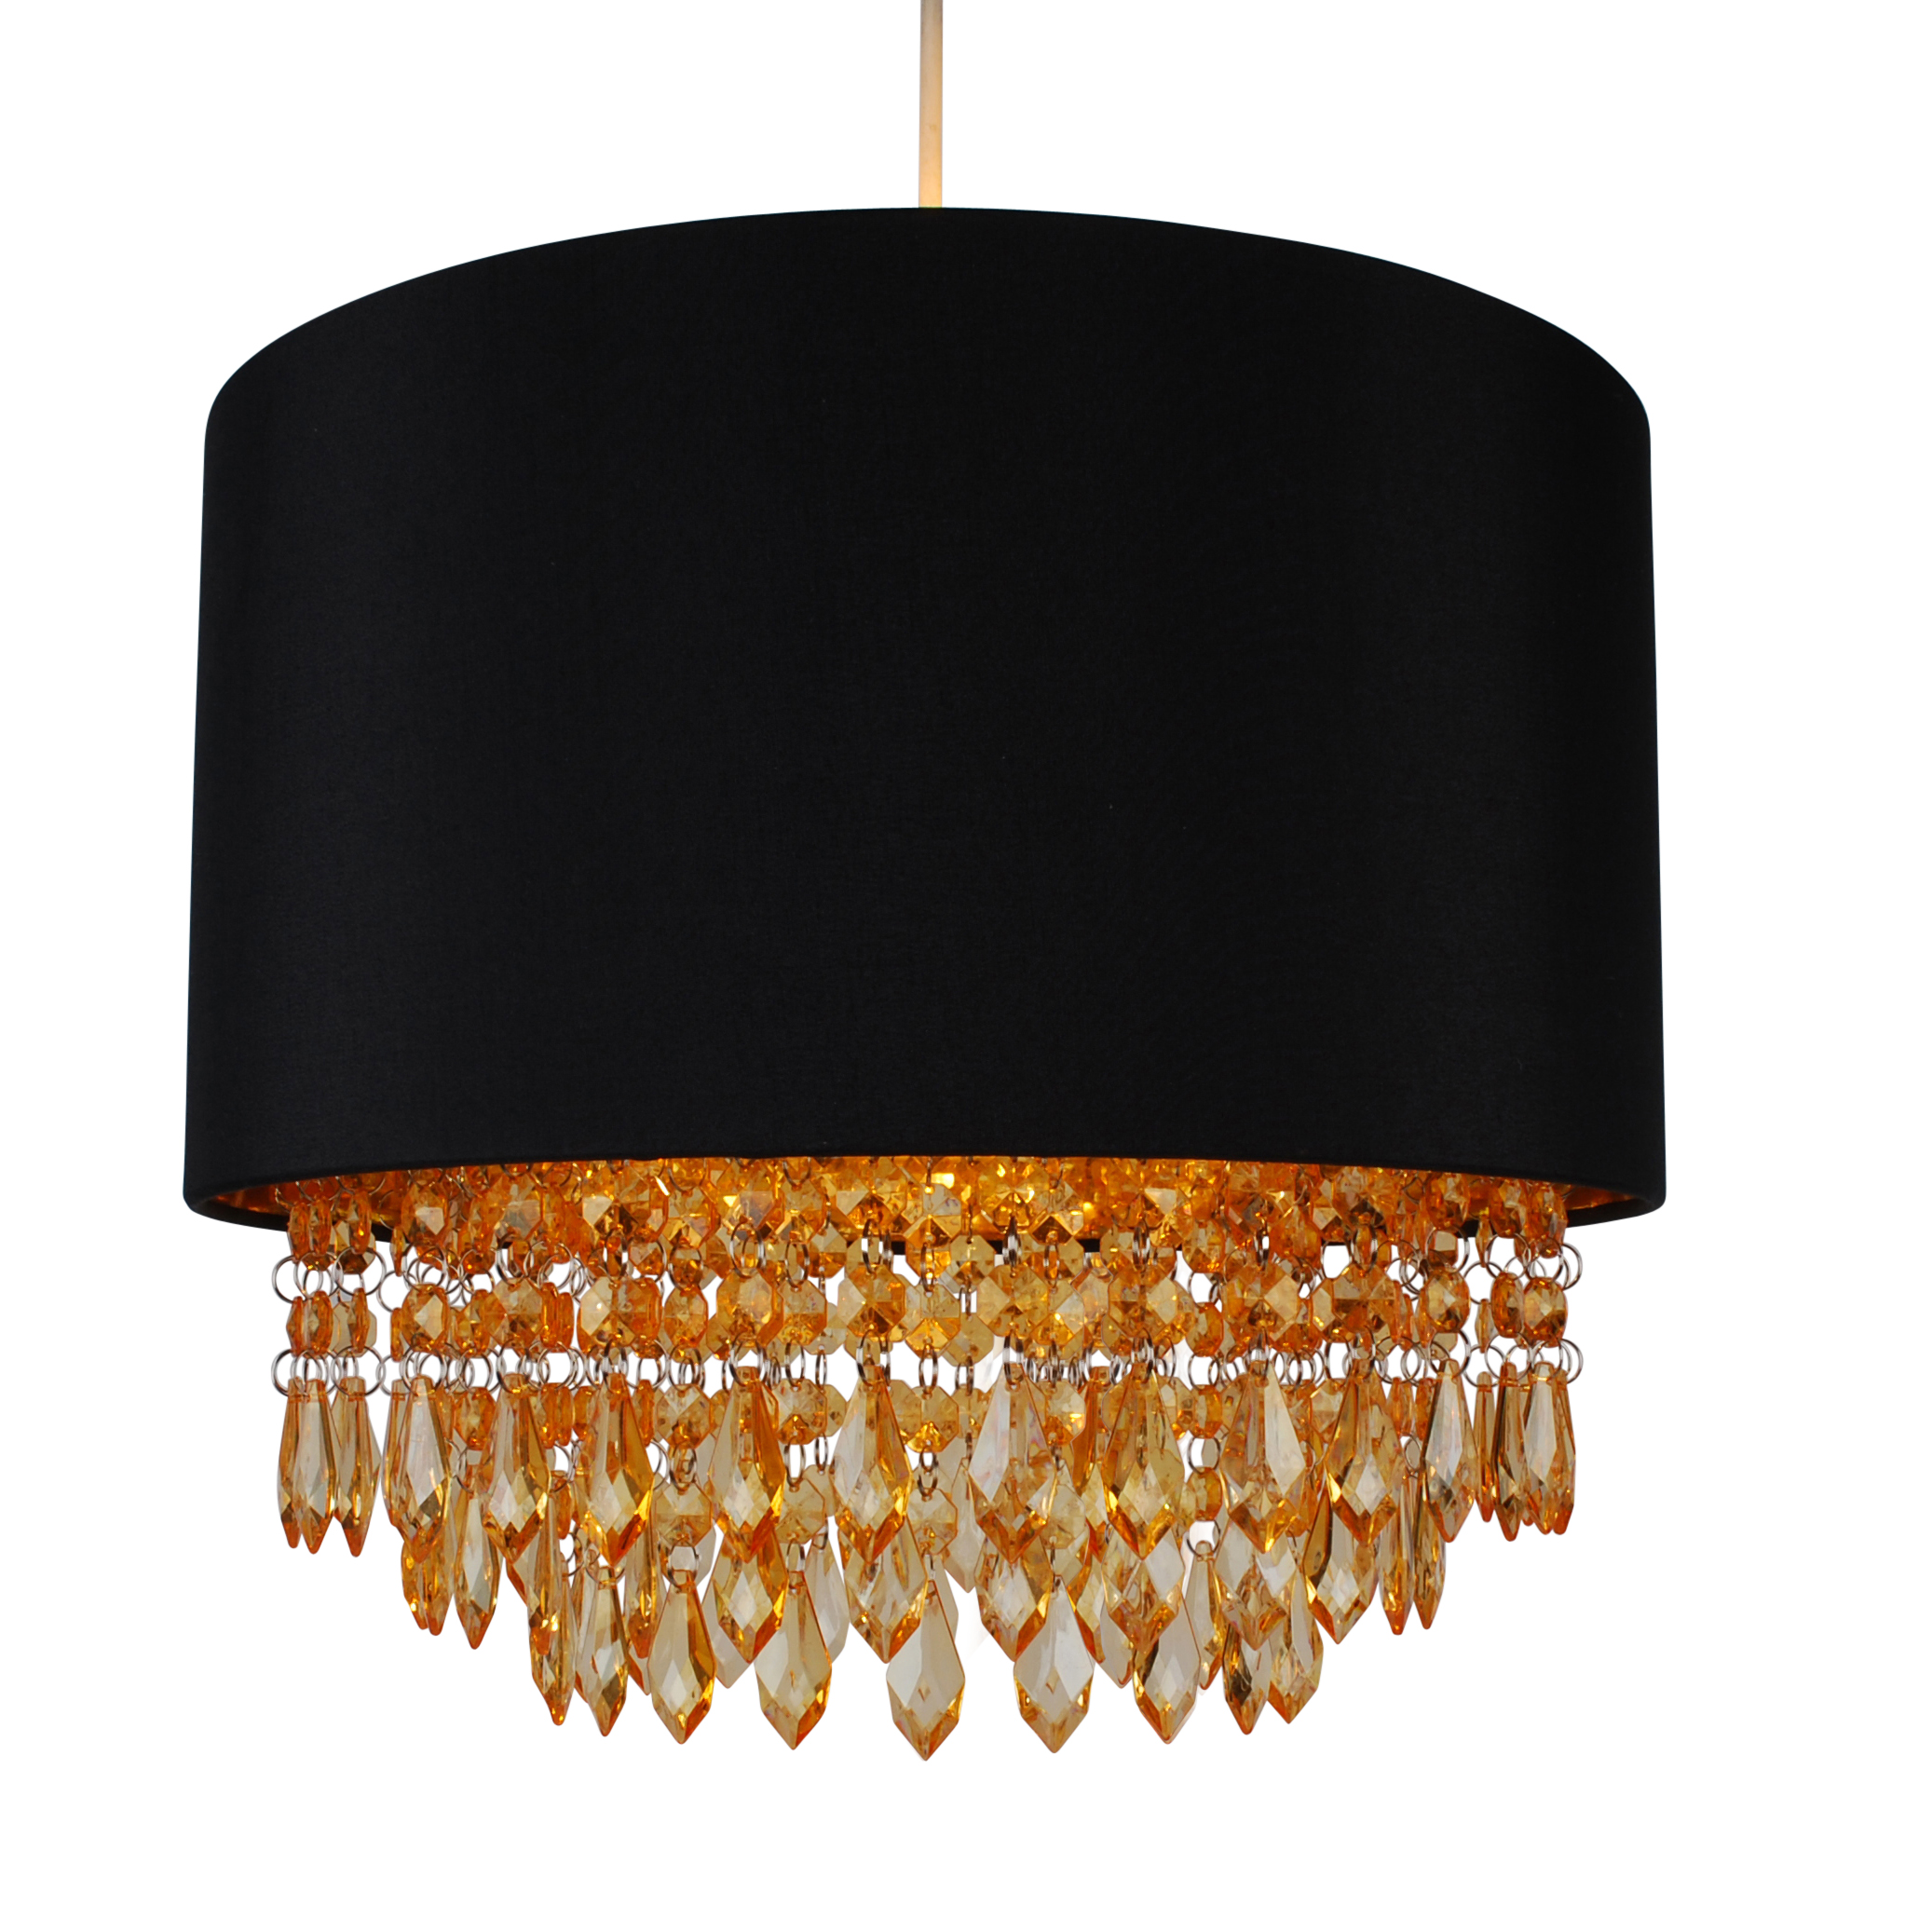 Modern Easy Fit Drum Shade Black Fabric Ceiling Pendant